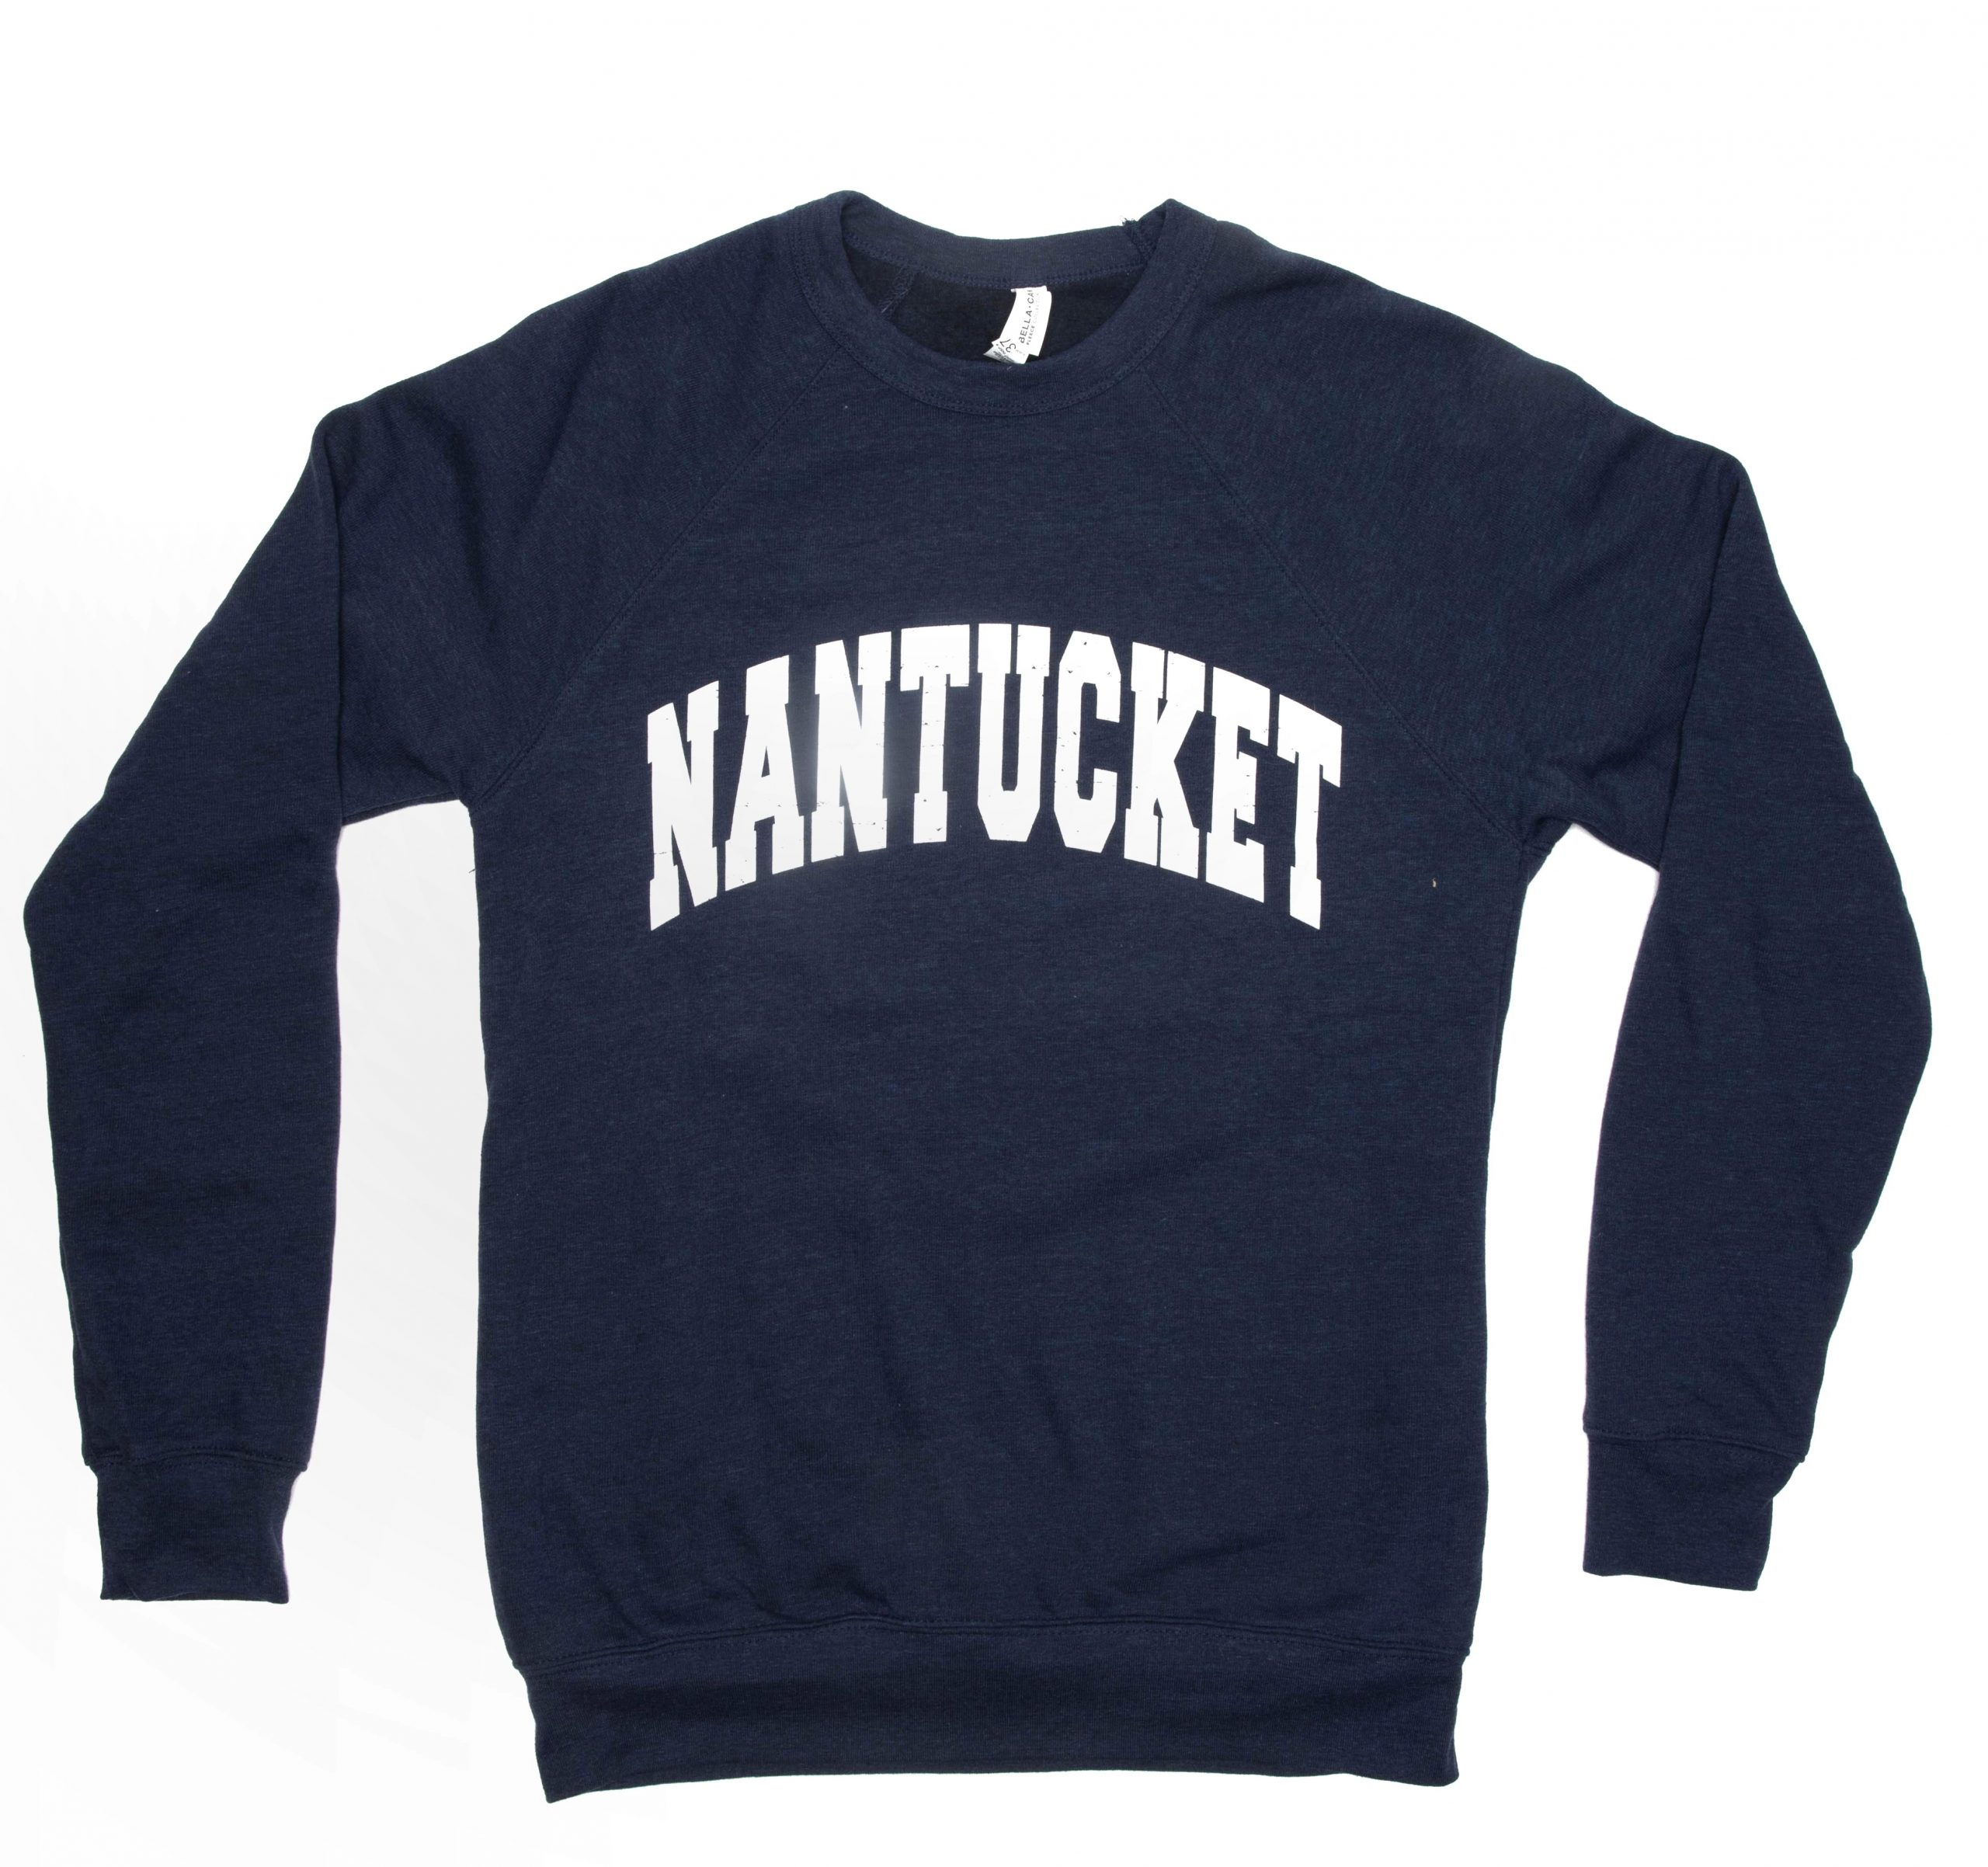 Find out what kind of Nantucket hoodie you can buy online